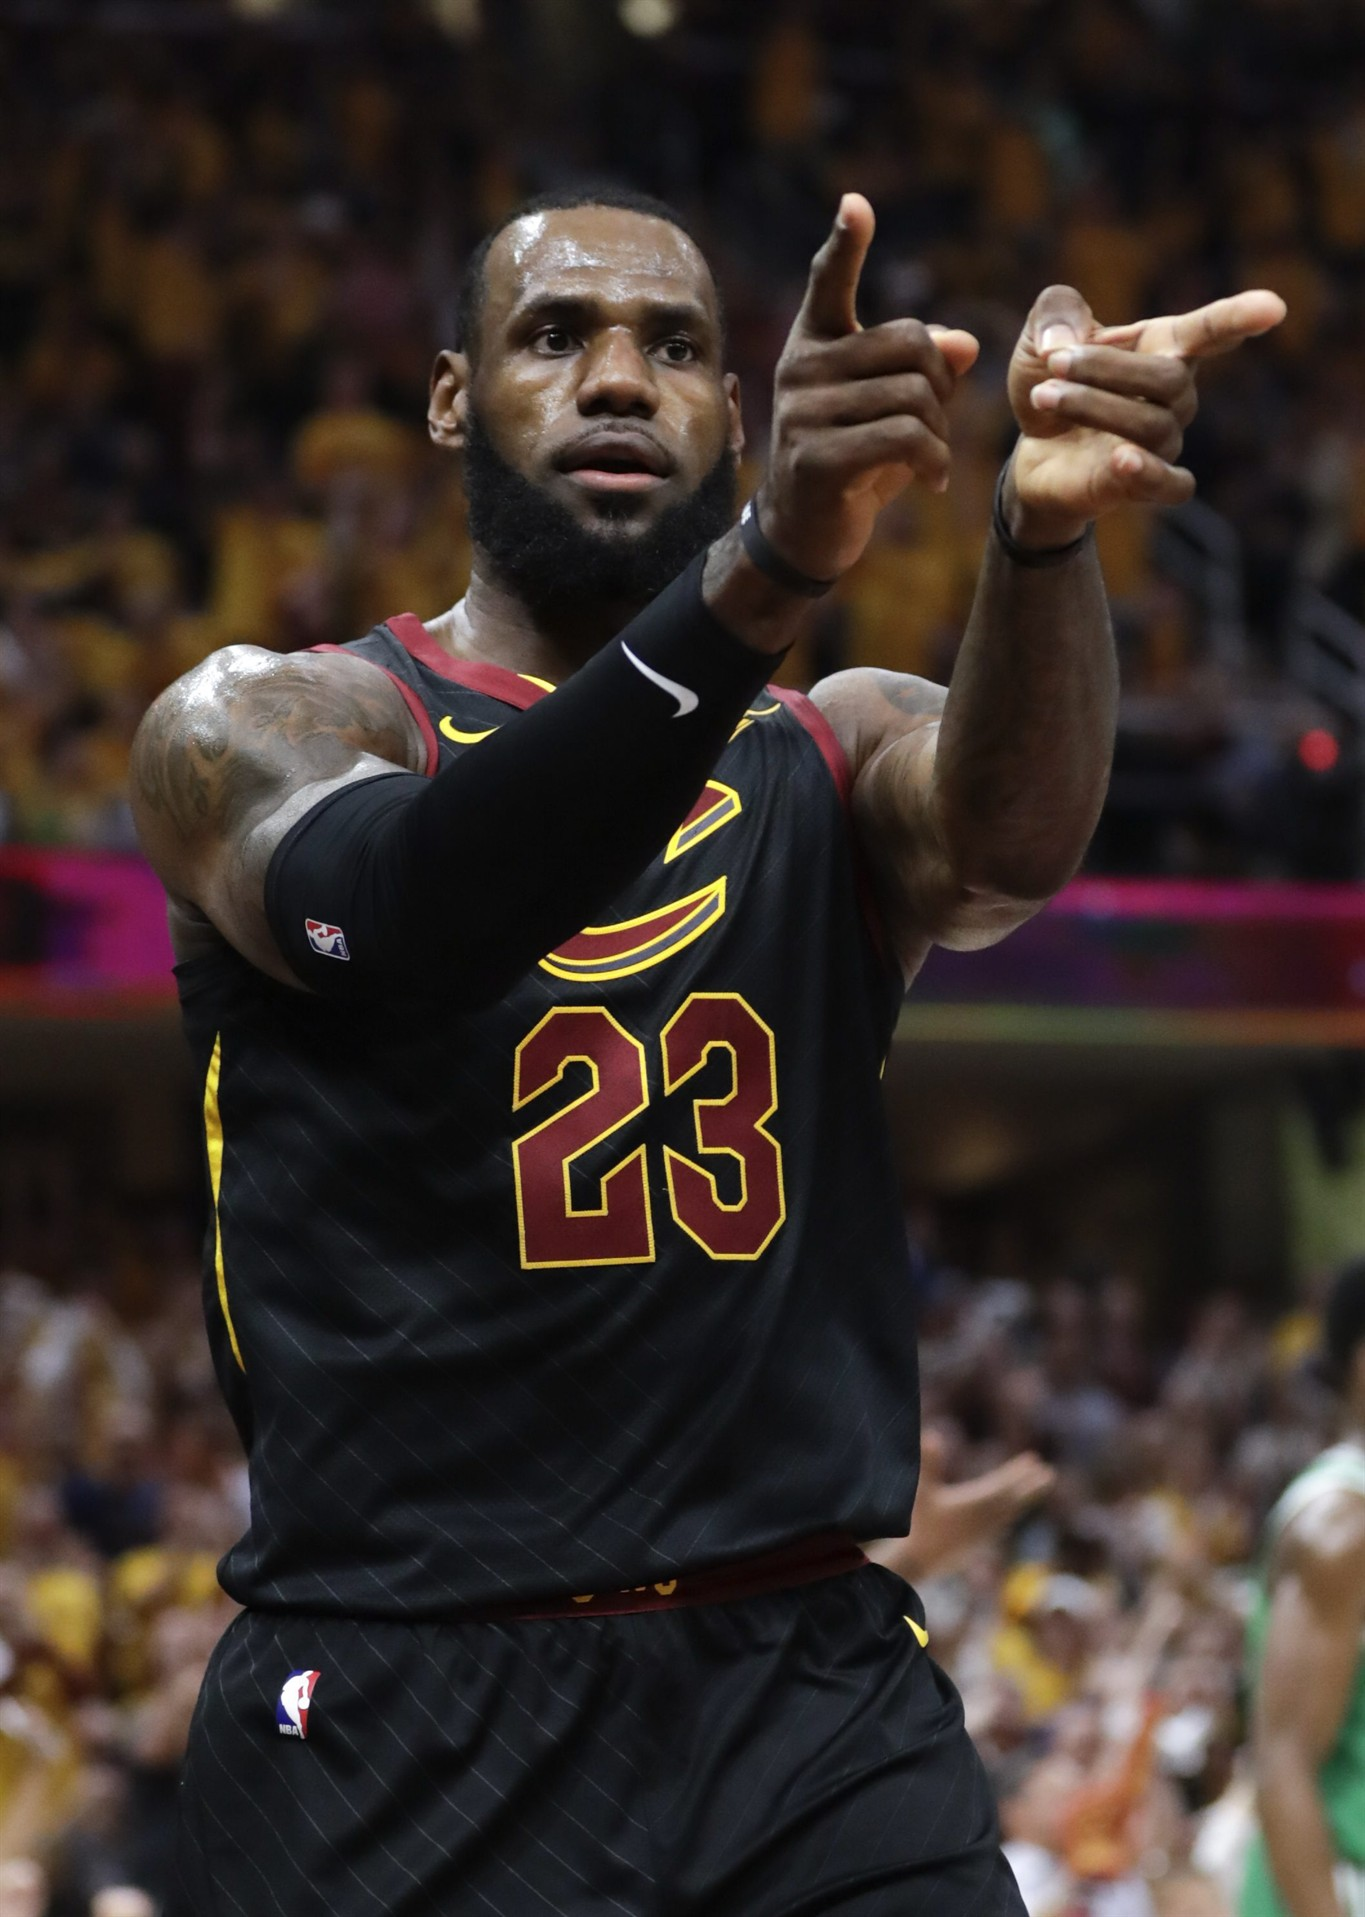 a2d84e84a38b Cleveland Cavaliers  LeBron James (23) reacts after a play against the  Boston Celtics in the first half of Game 4 of the NBA basketball Eastern  Conference ...